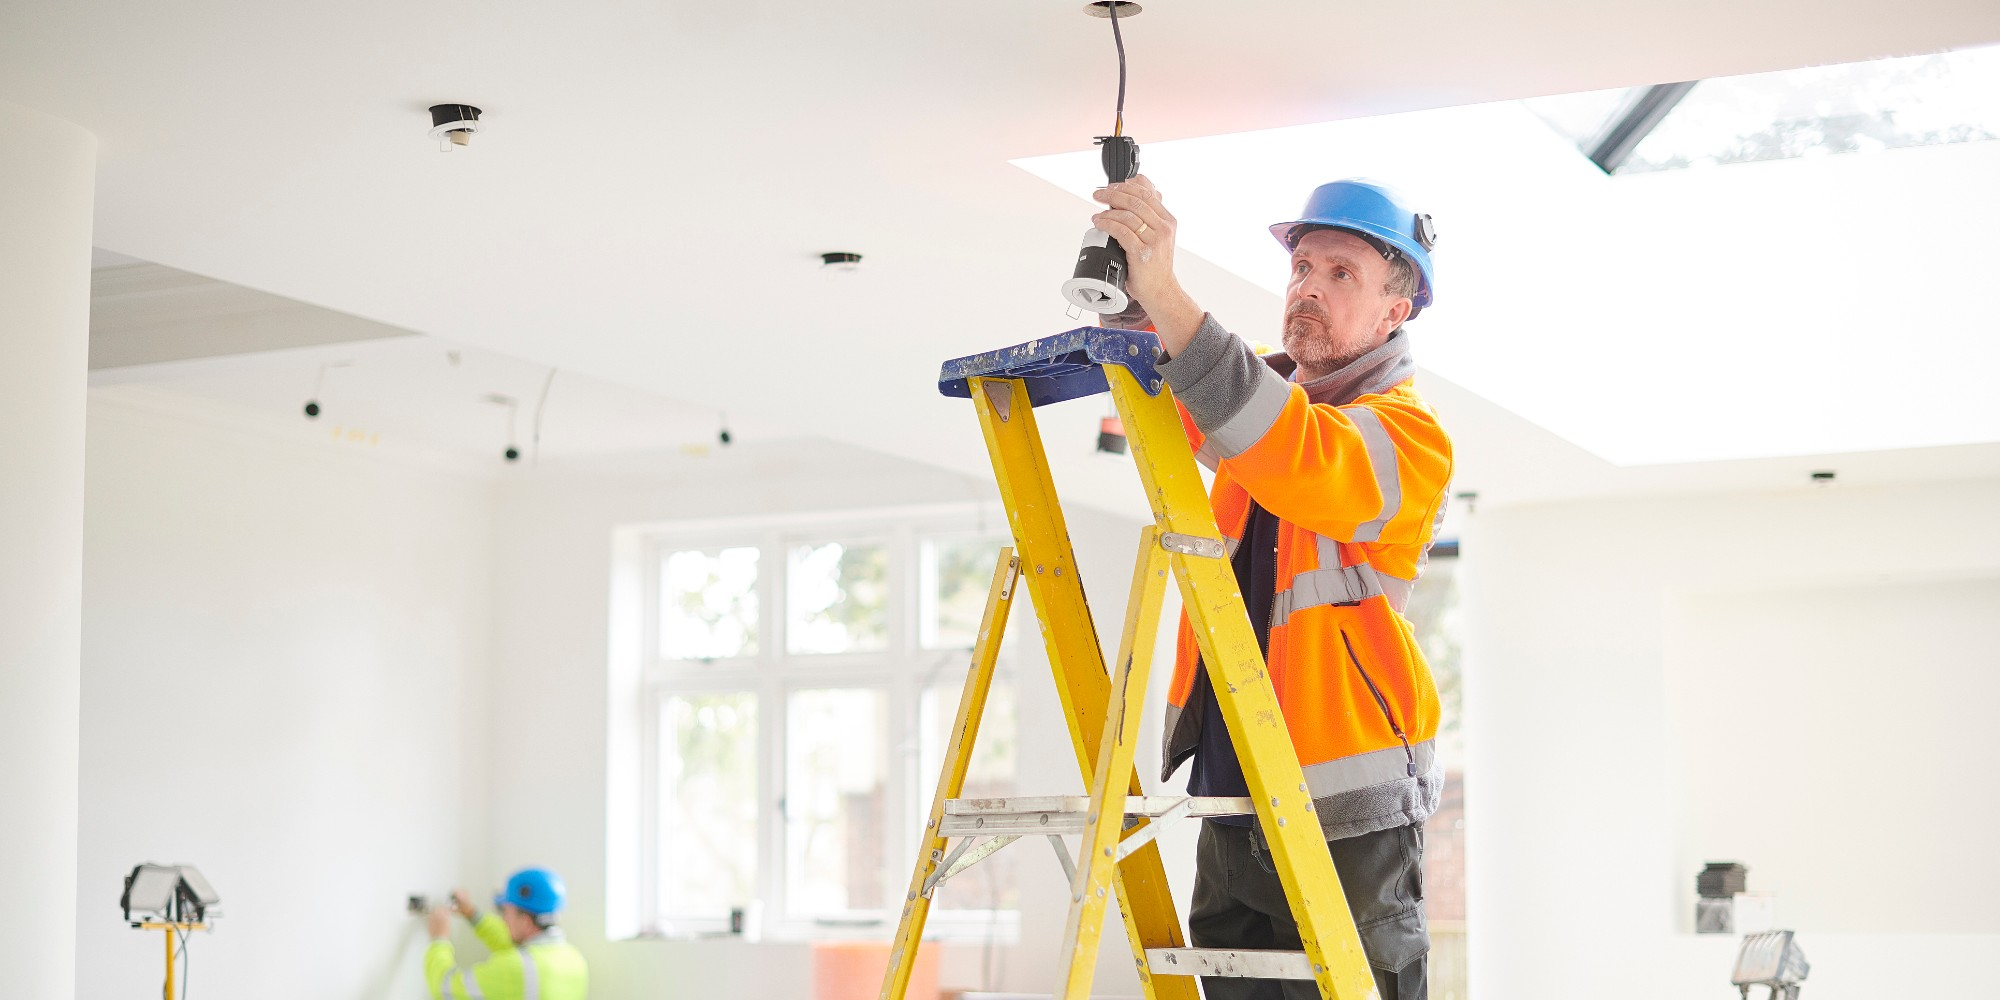 Electrician Installing Pot Light In Residential Home Standing On Ladder